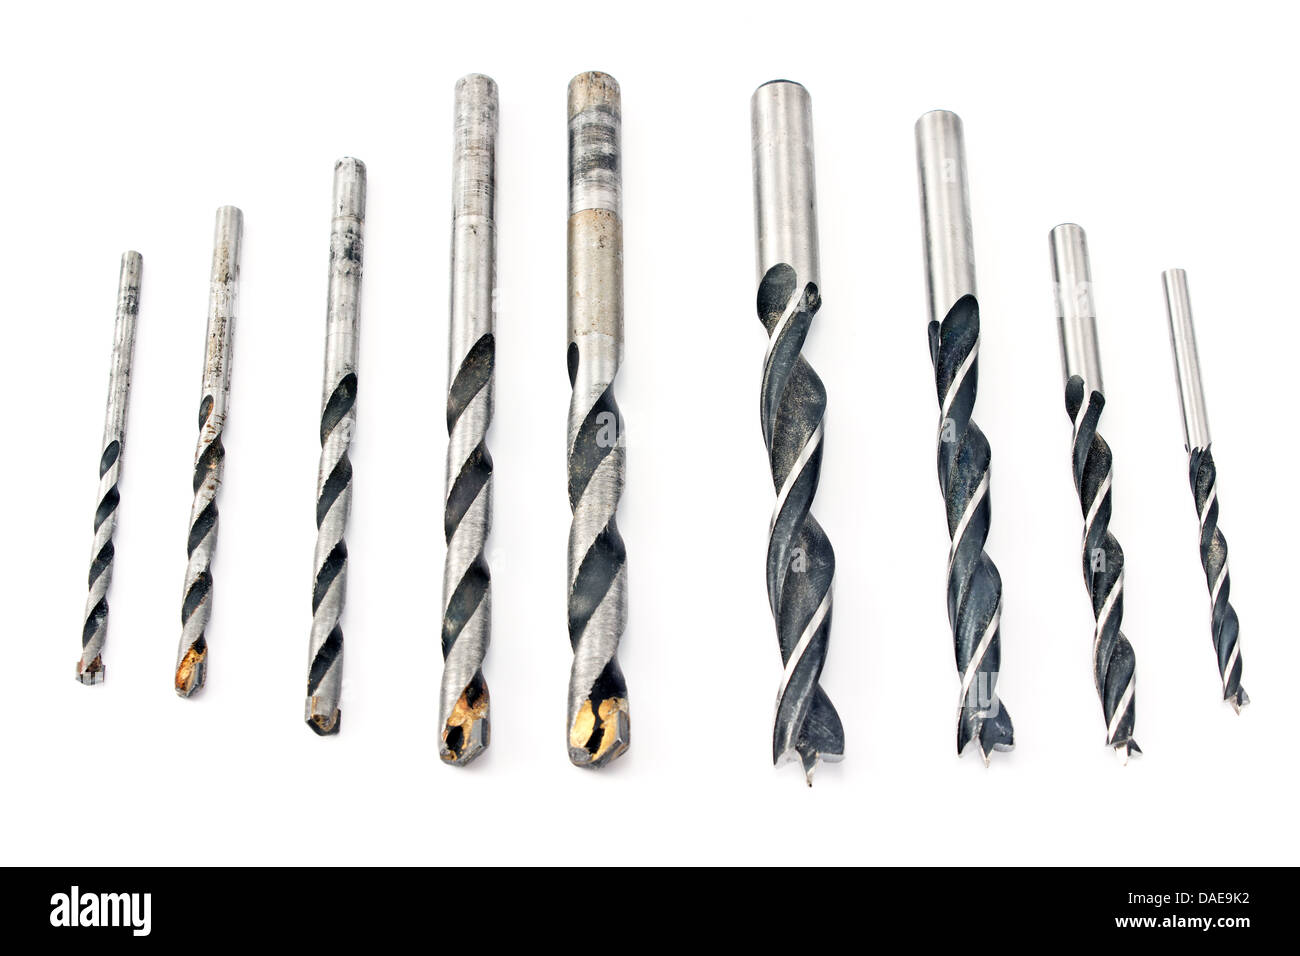 Drill Bits Cutout High Resolution Stock Photography And Images Alamy